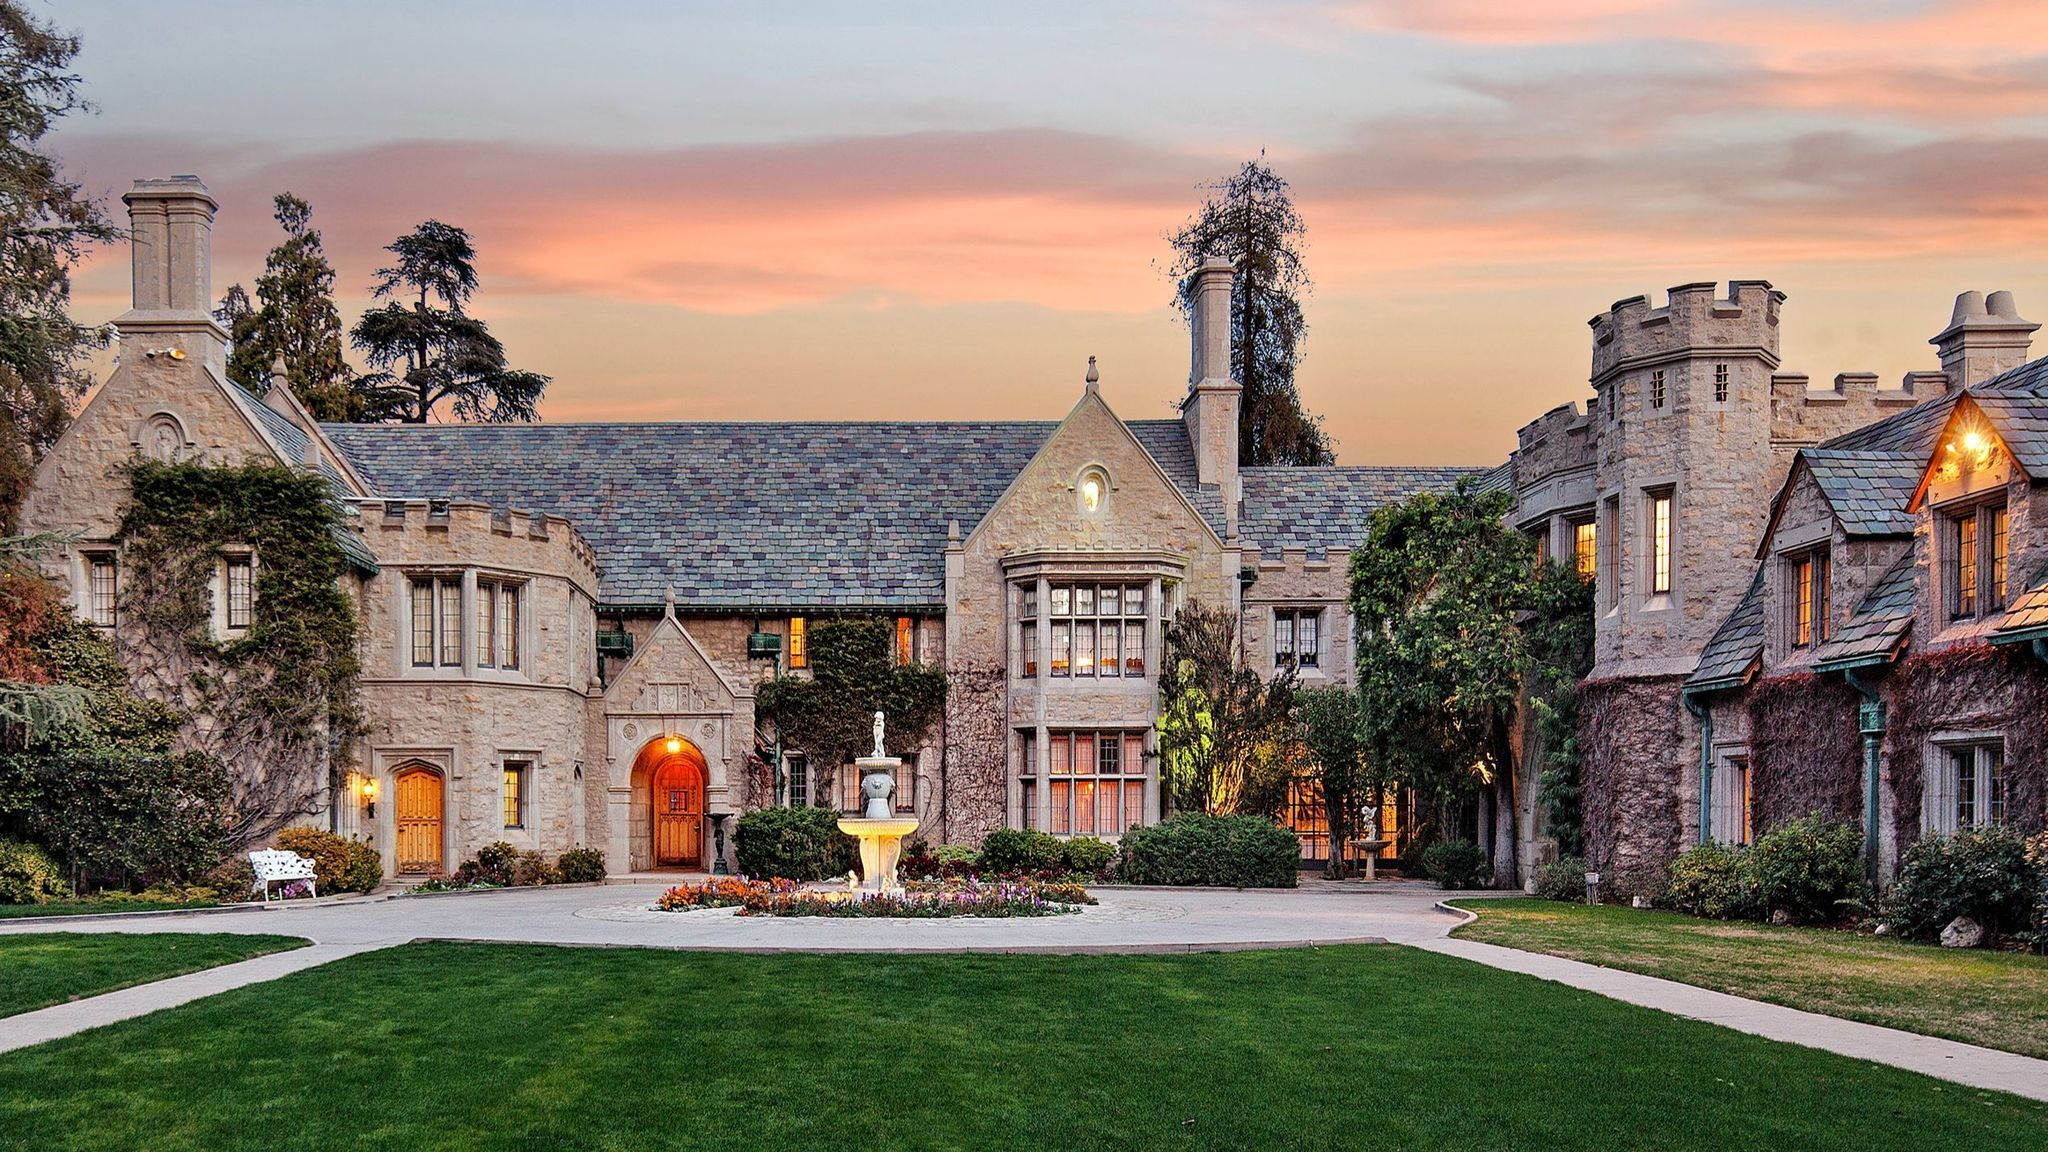 The Playboy Mansion Has Found A Buyer: Hugh Hefner's Playboy Mansion Was Hedonistic Headquarters